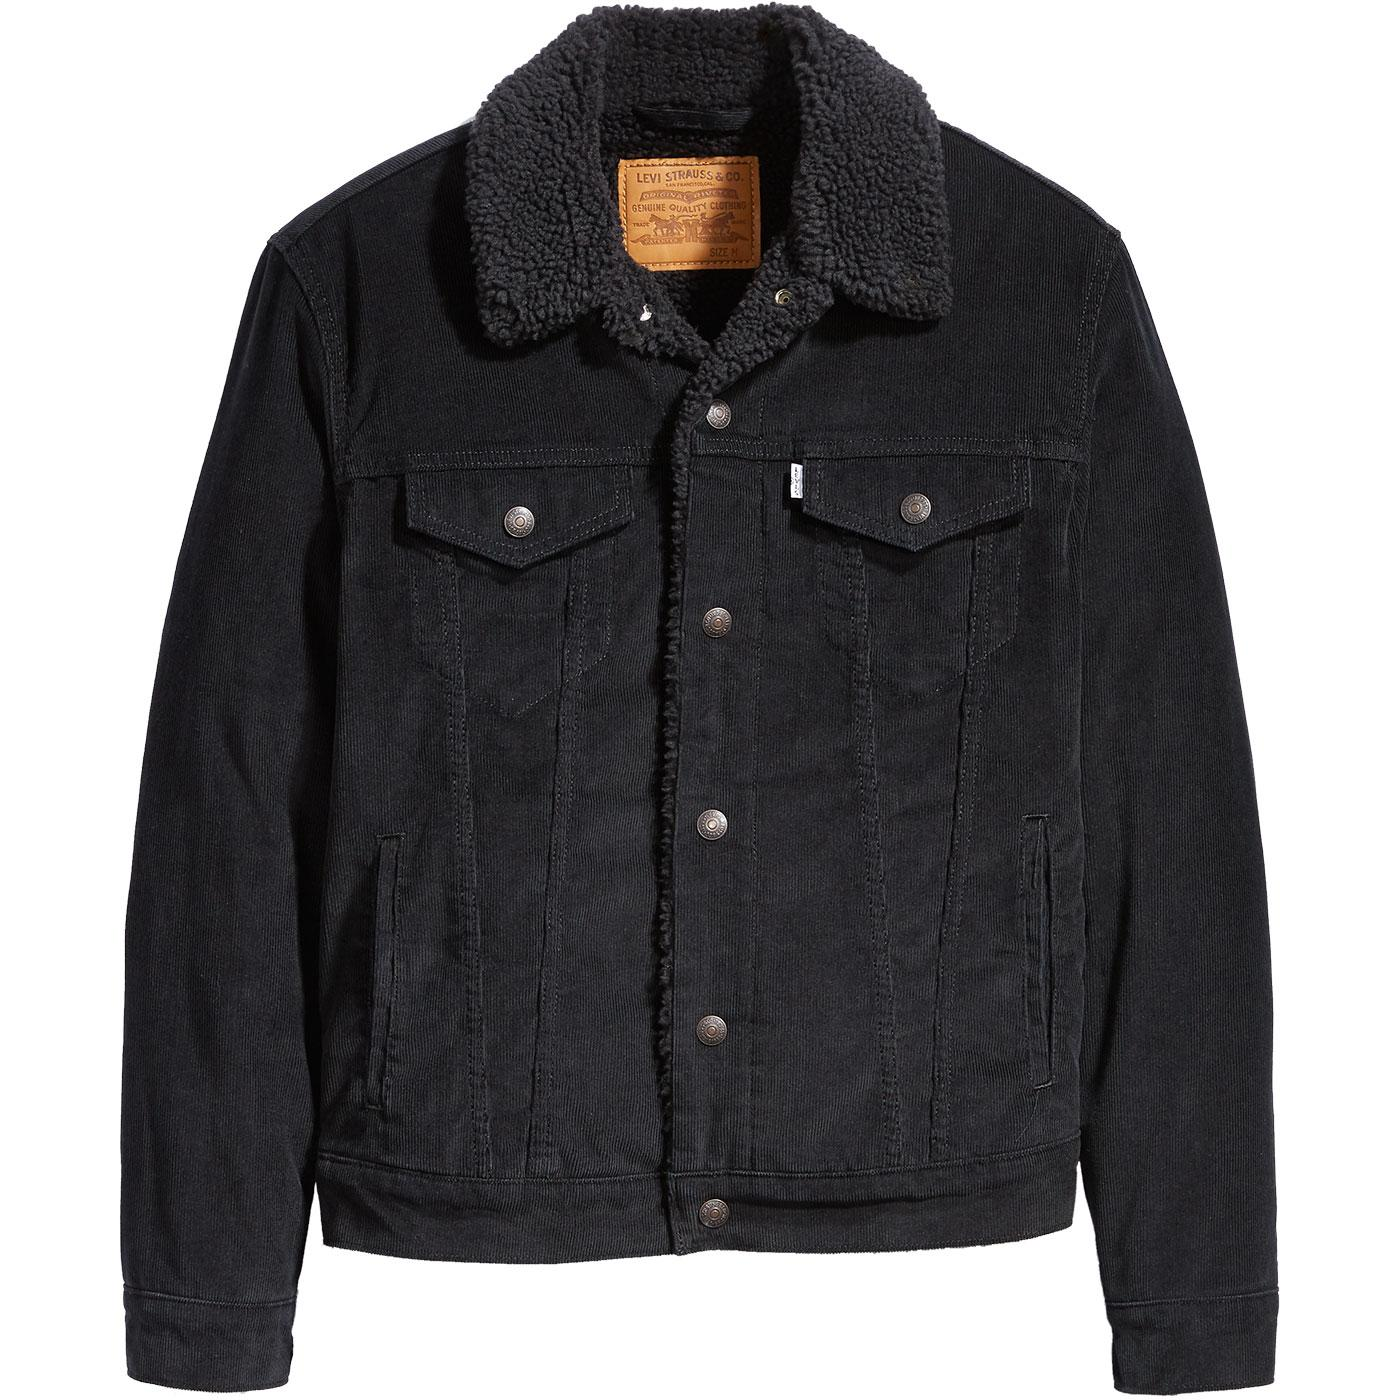 LEVI'S Type 3 Retro Sherpa Cord Trucker Jacket (B)